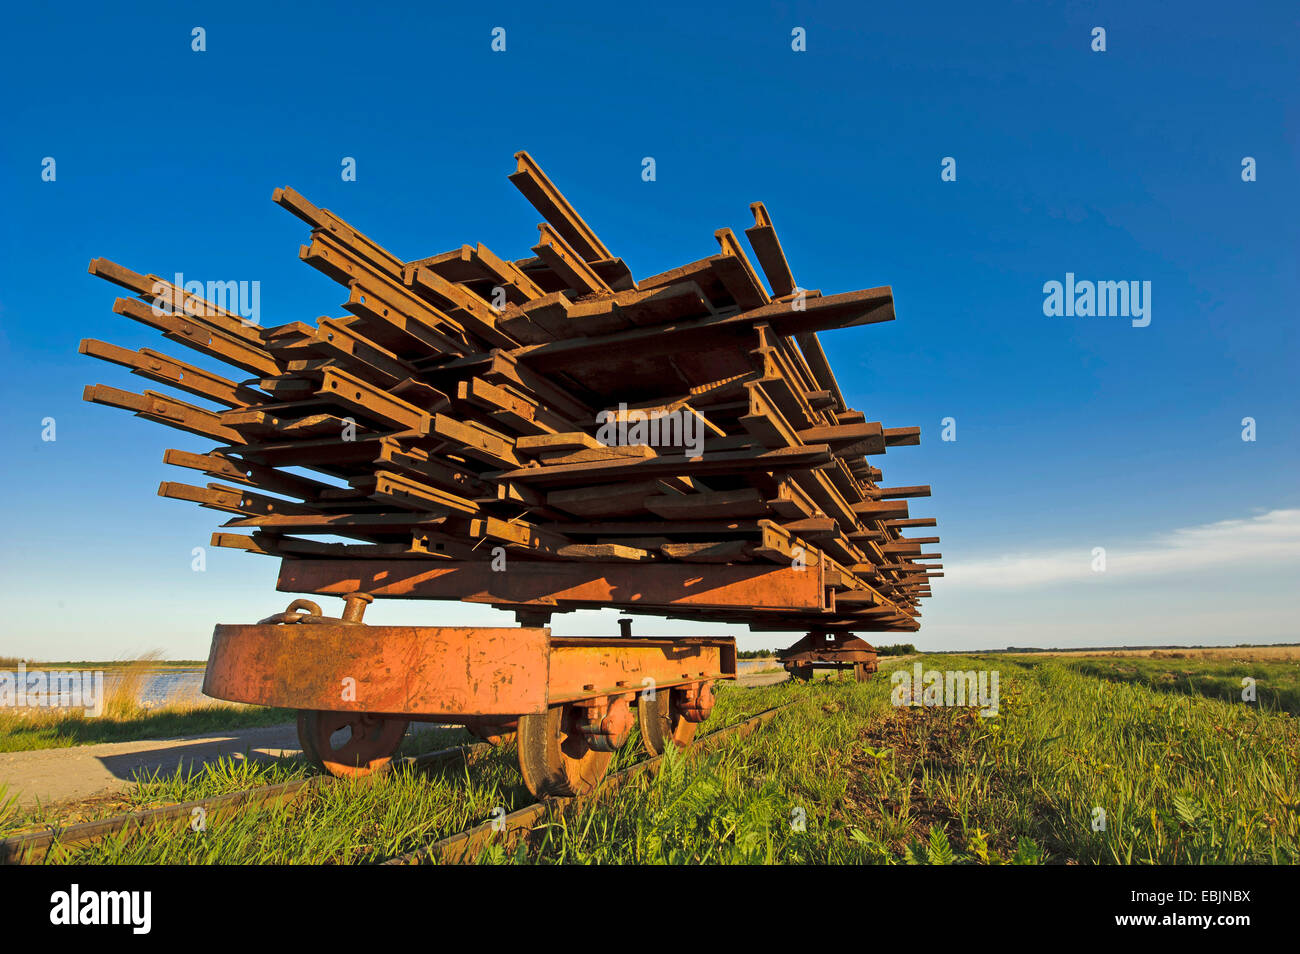 waggon loaded with rails for building the track for the moor railway in the Goldenstedter Moor, Germany, Lower Saxony, - Stock Image